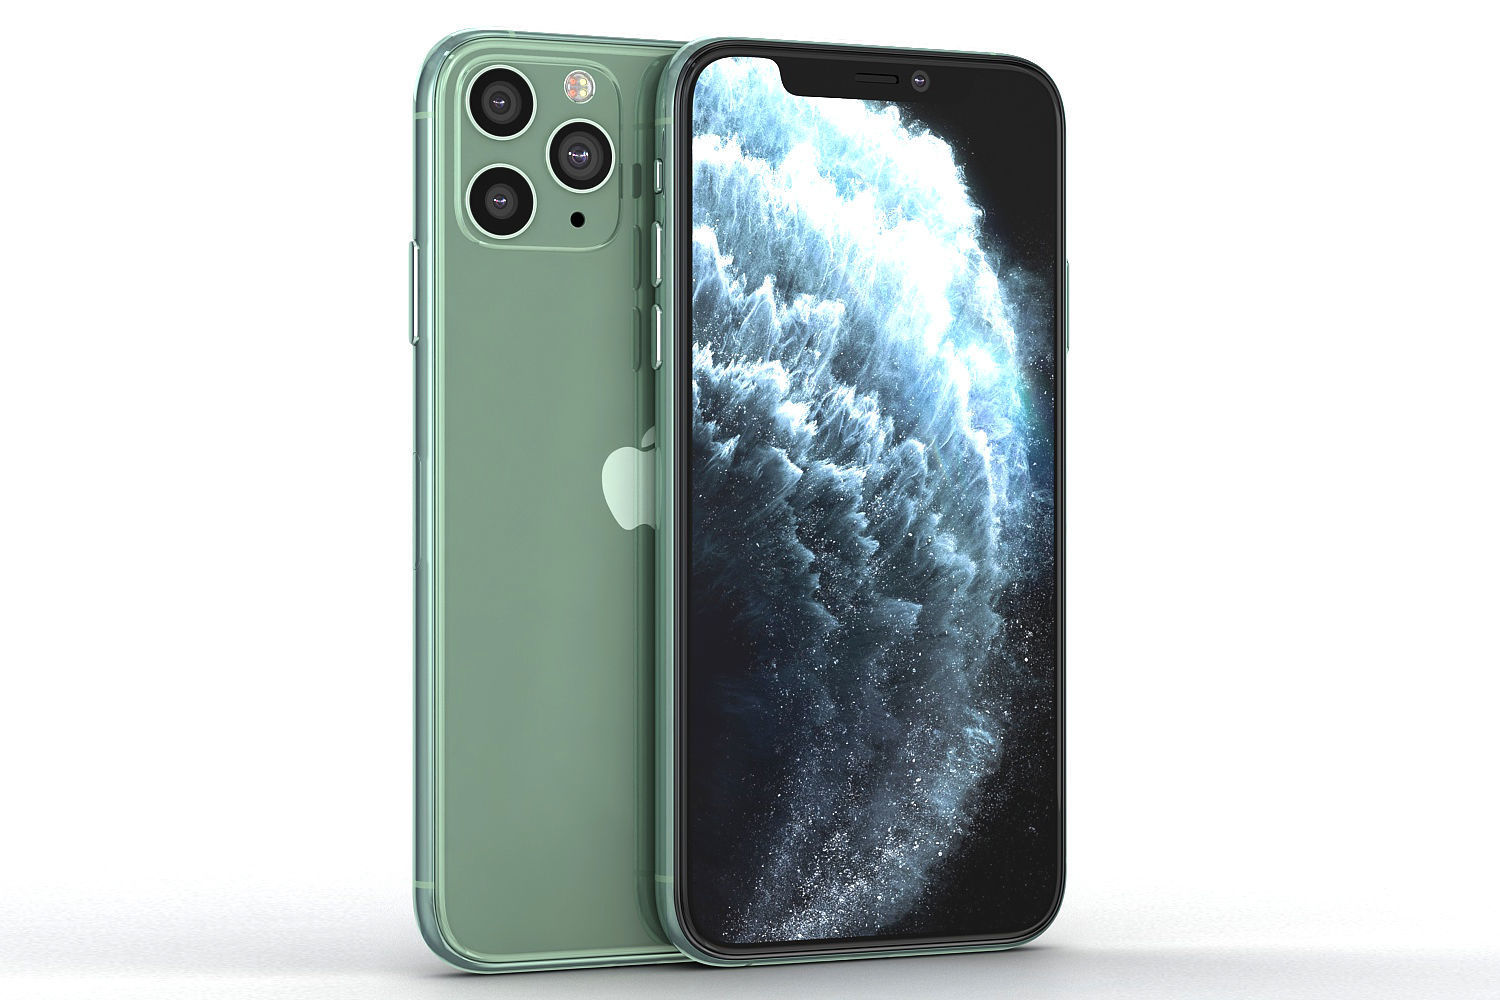 Green iphone 11 pro